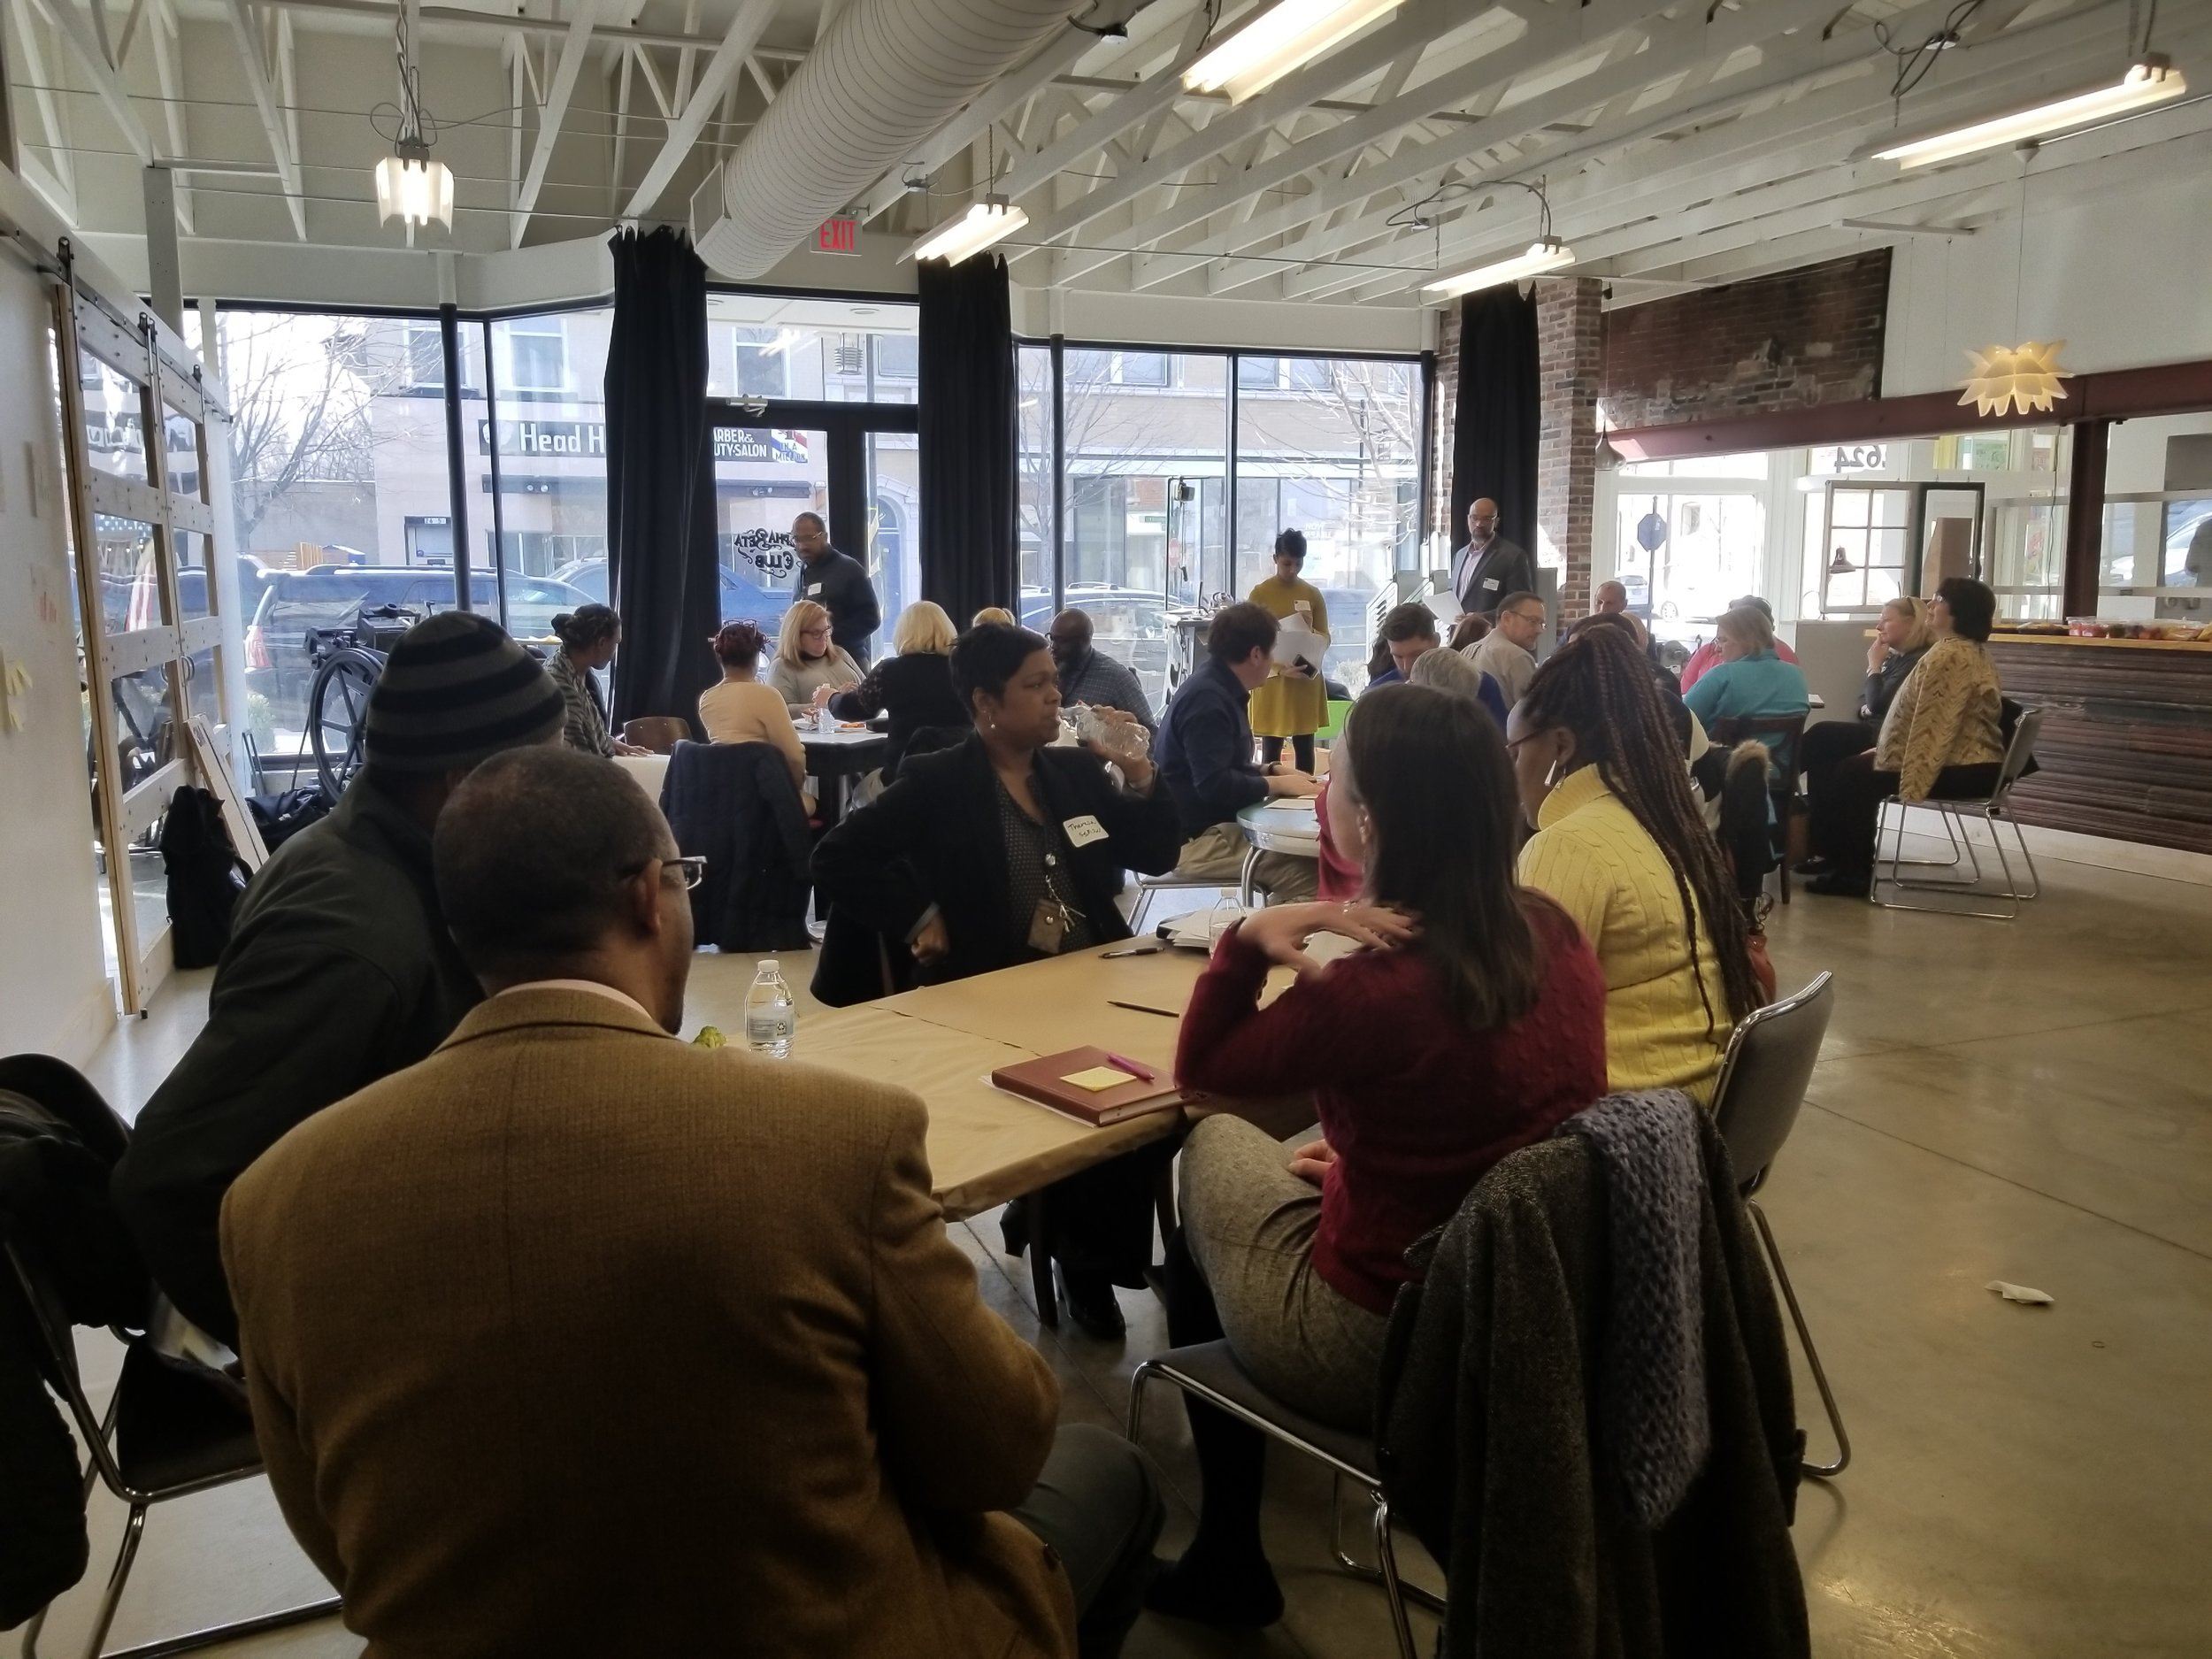 Partners for Preservation Square - Our team of organizations, service providers and neighborhood institutions meet regularly to ensure change in the Near North Side touches everyone.